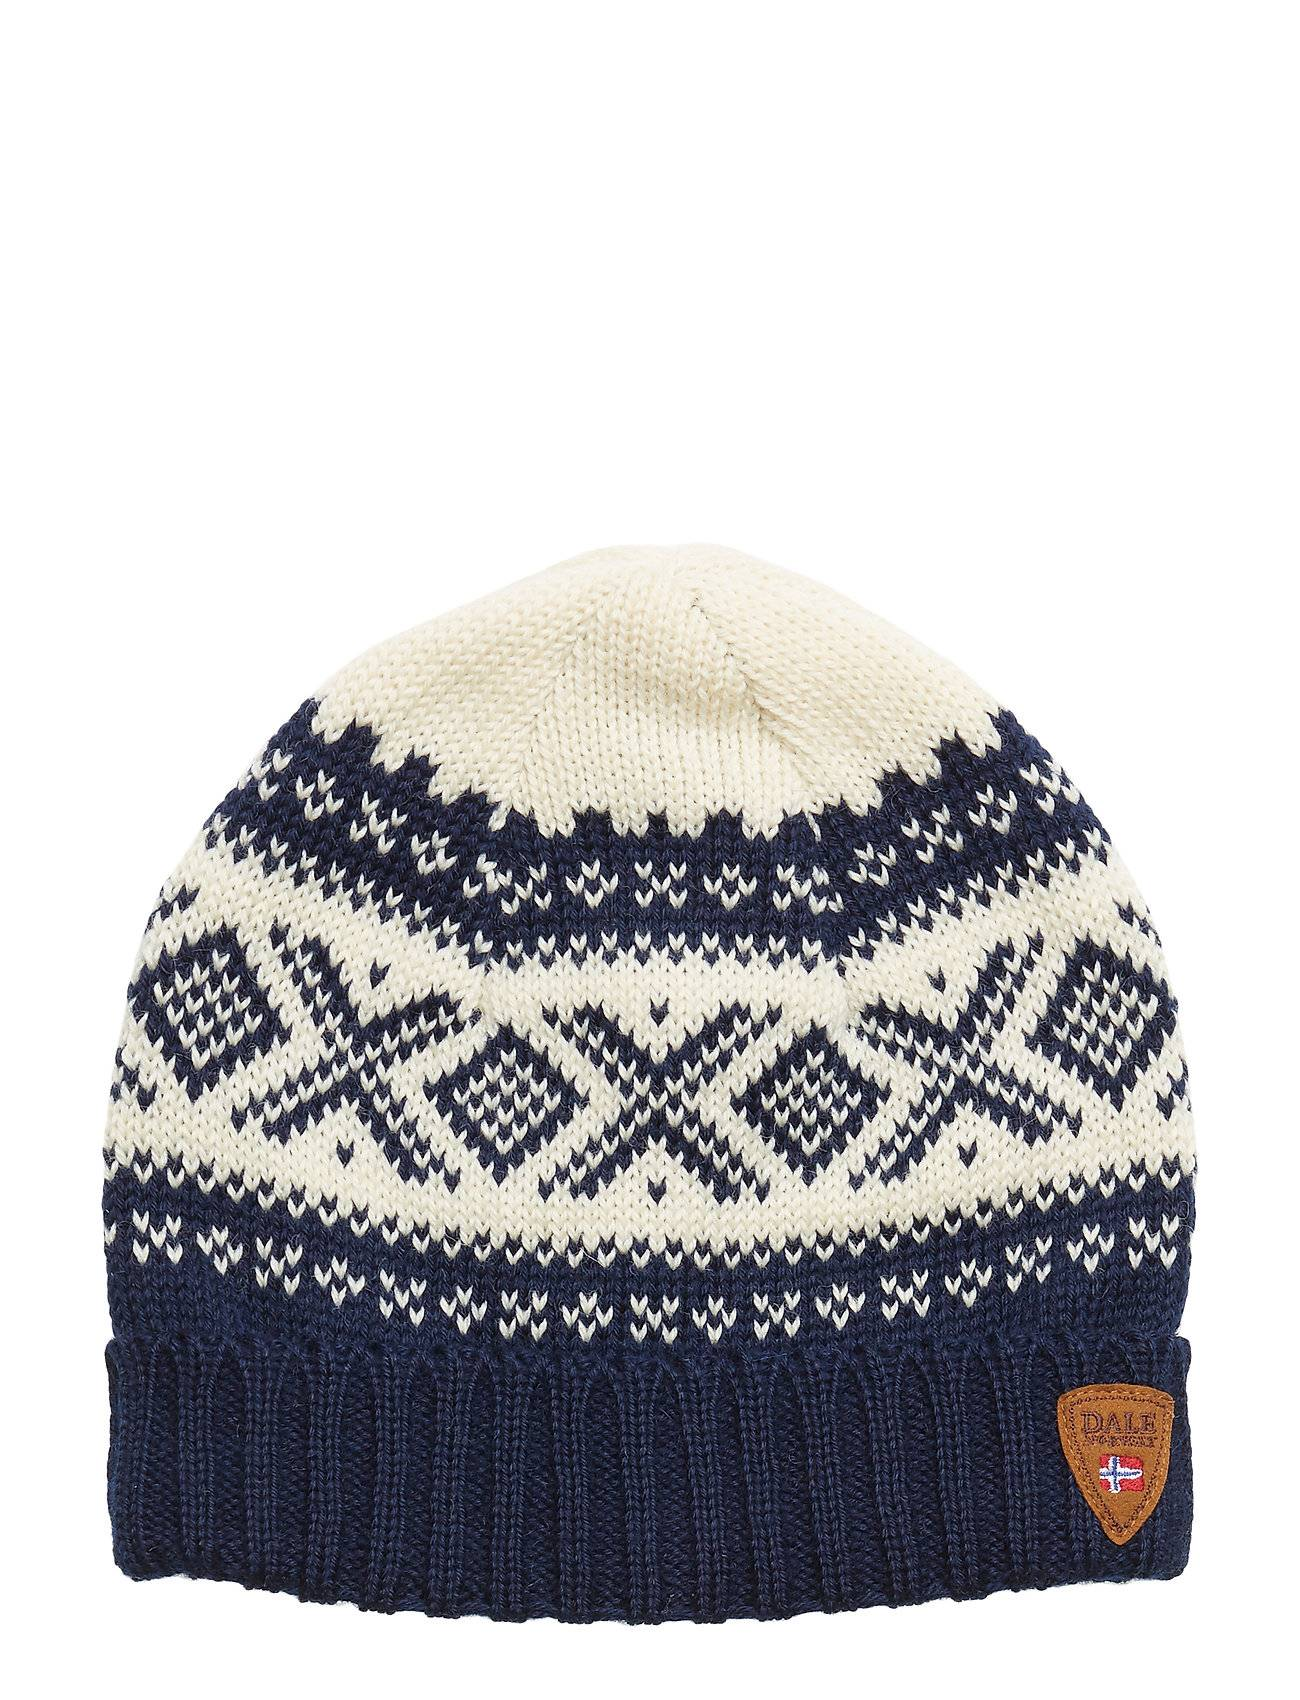 Dale of Norway Cortina 1956 Hat